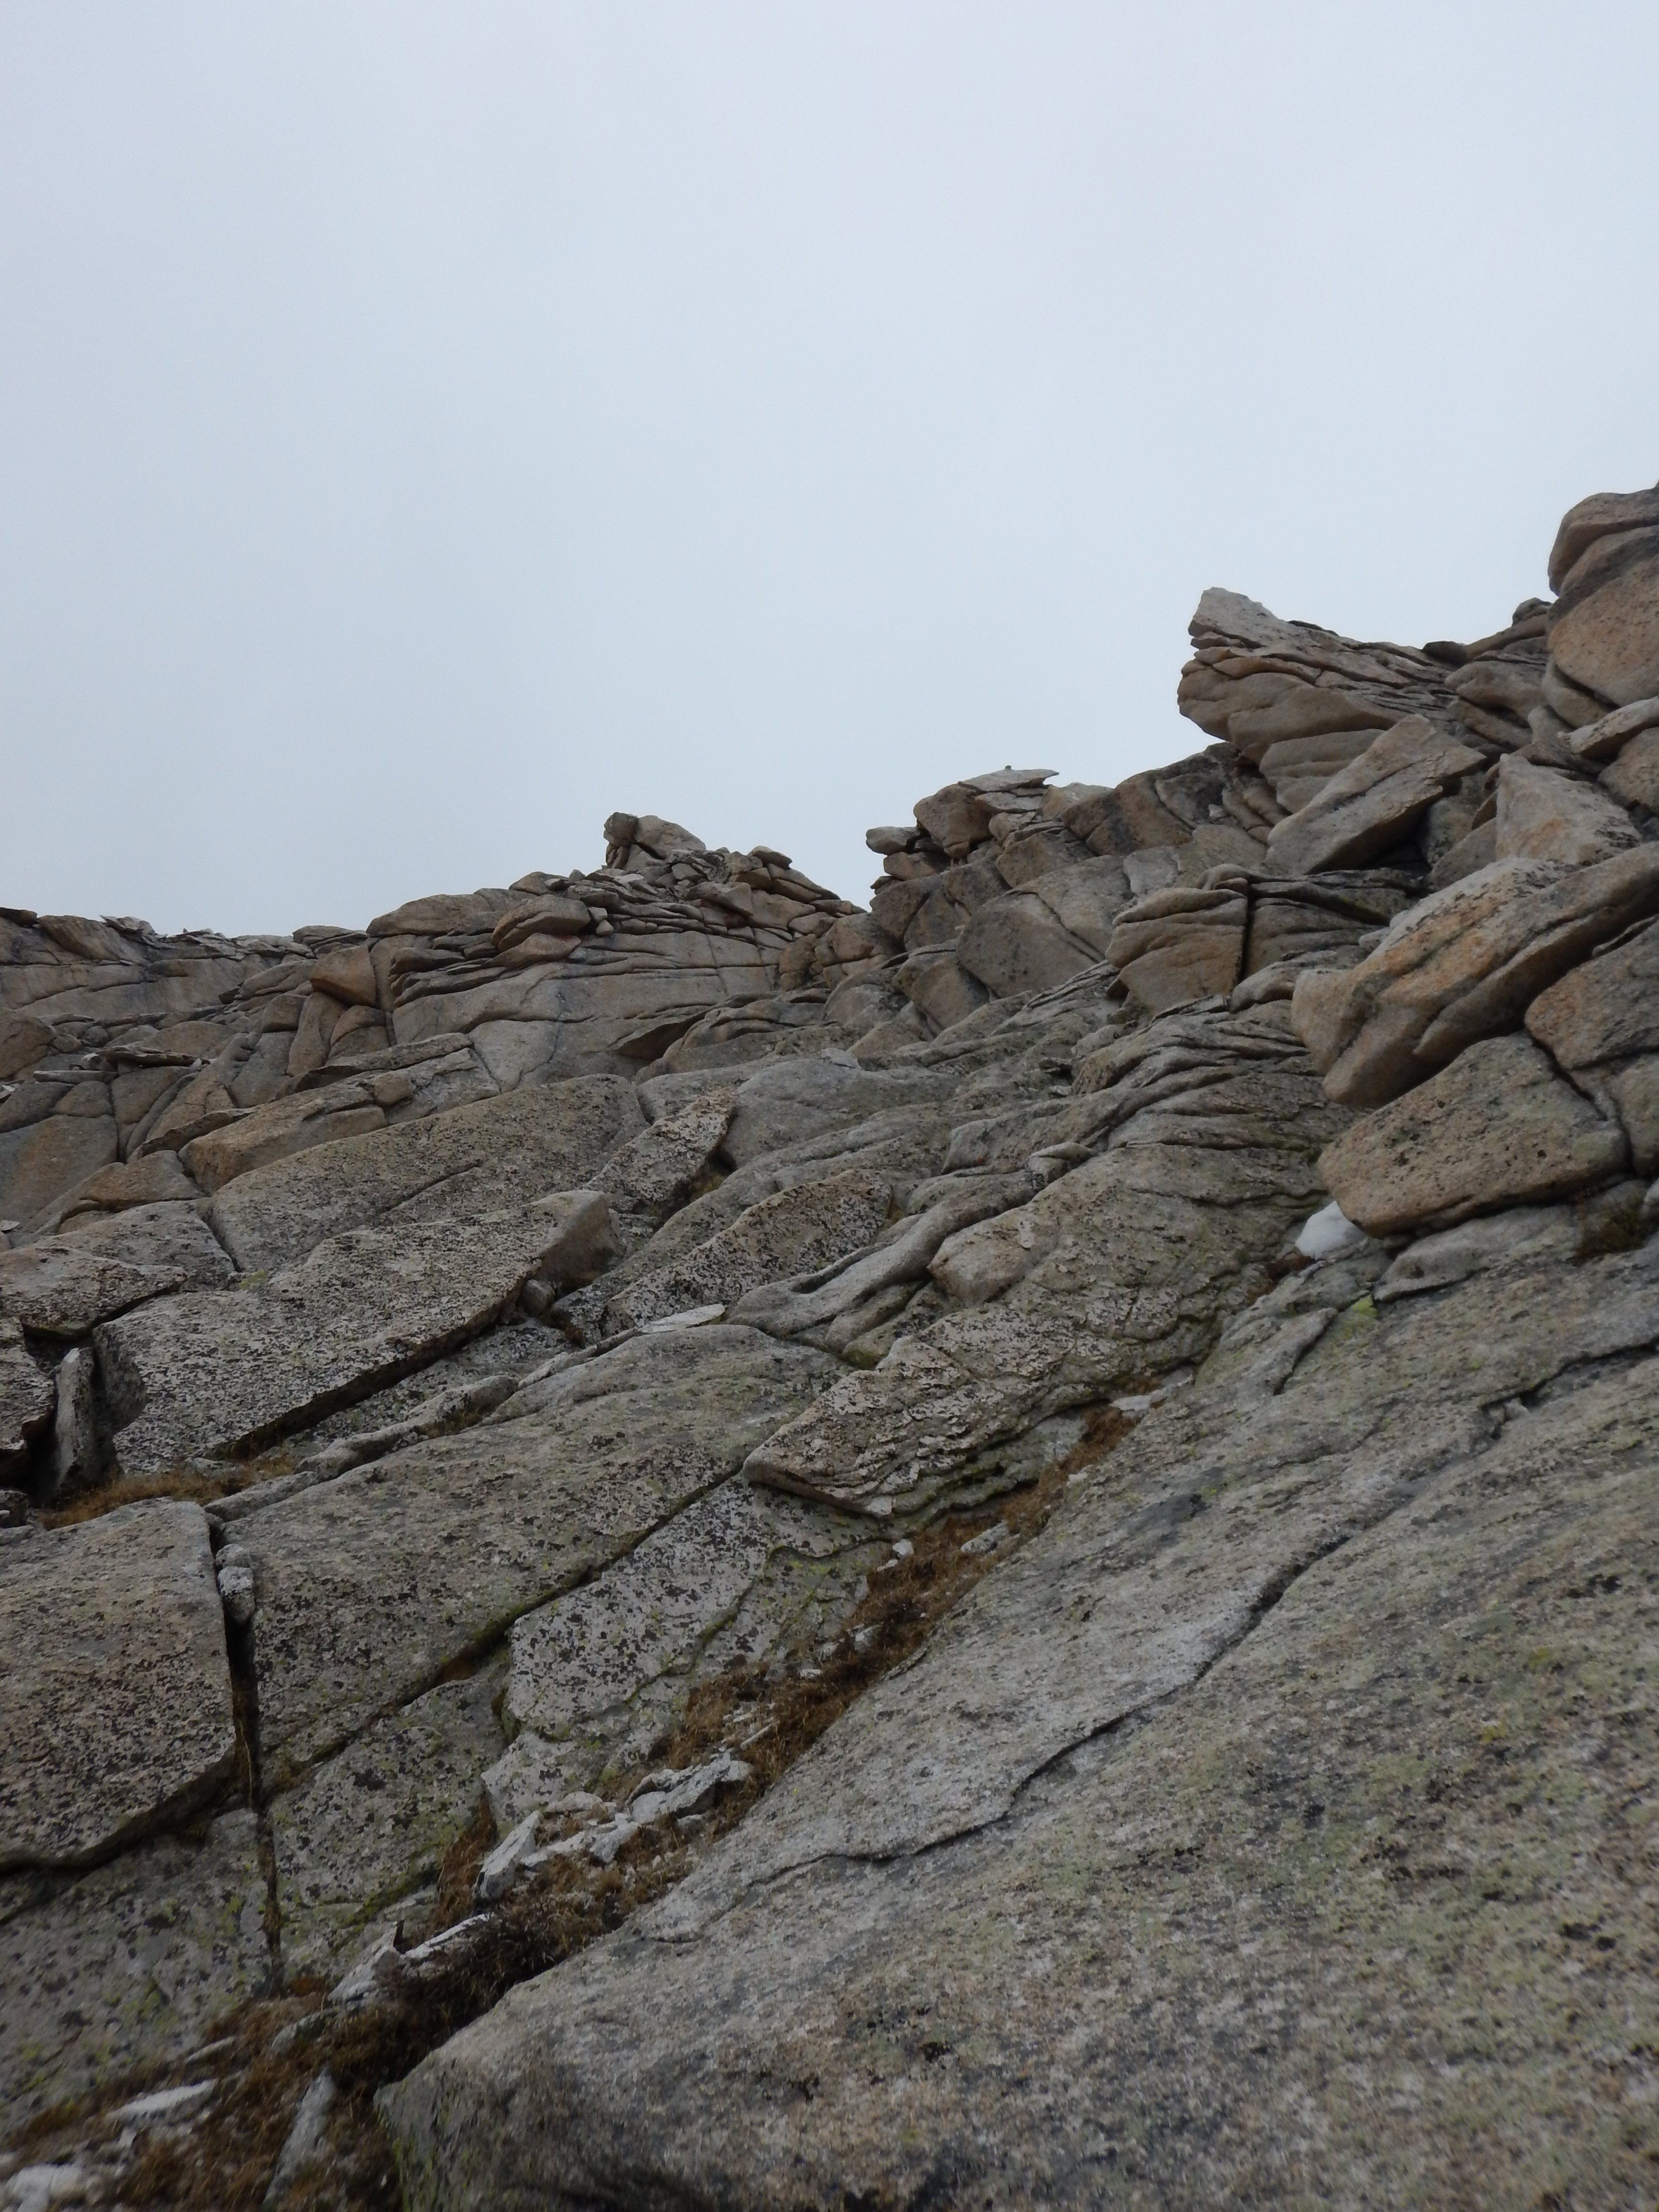 A little bit further on my ascent. I had to use my hands and scramble a lot.